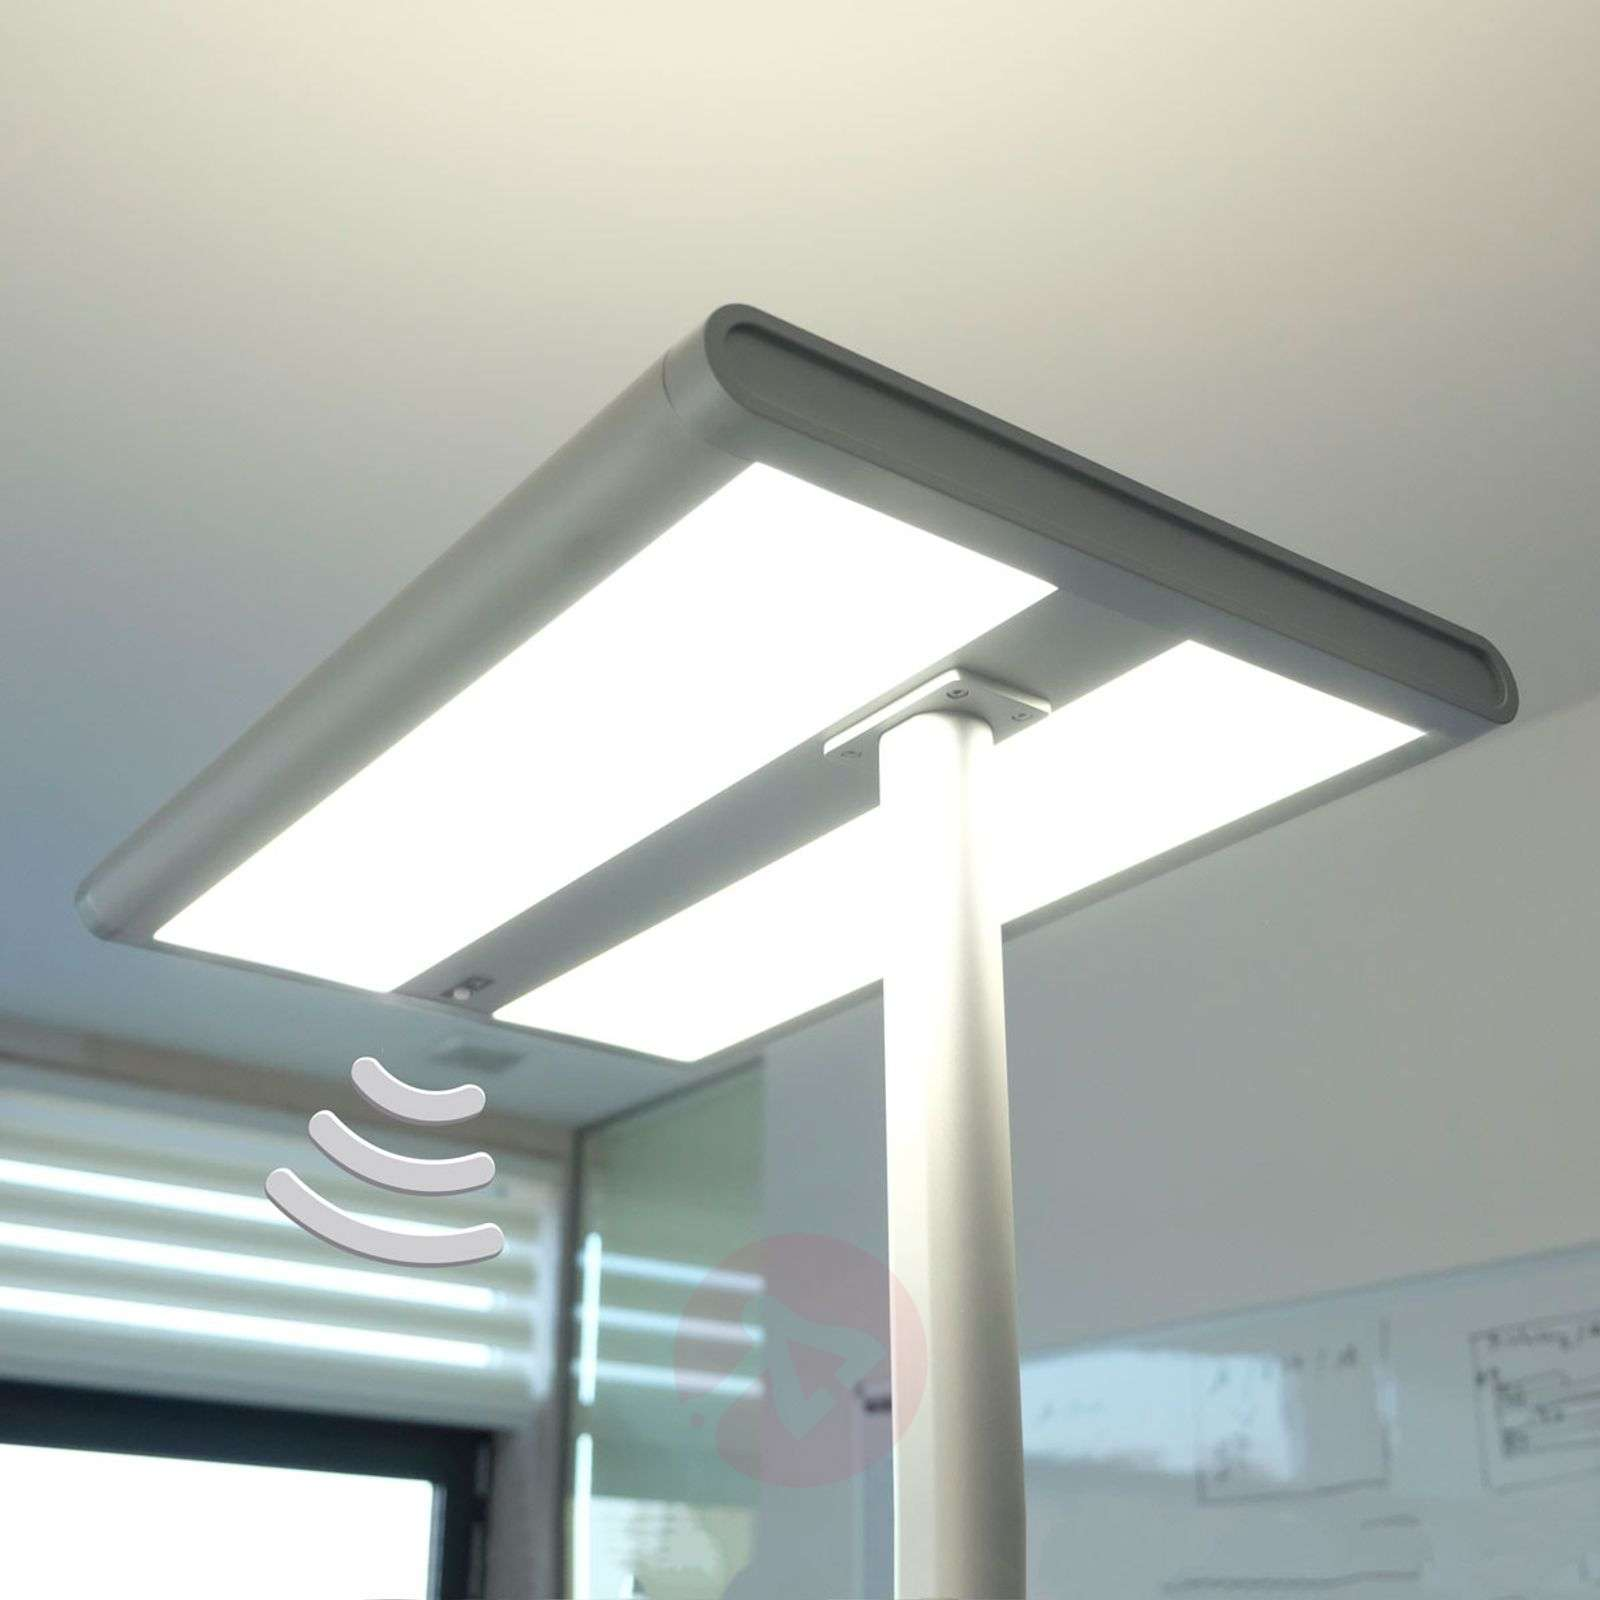 office table lamp. Quirin LED Office Floor Lamp With Sensor-9966001-01 Table